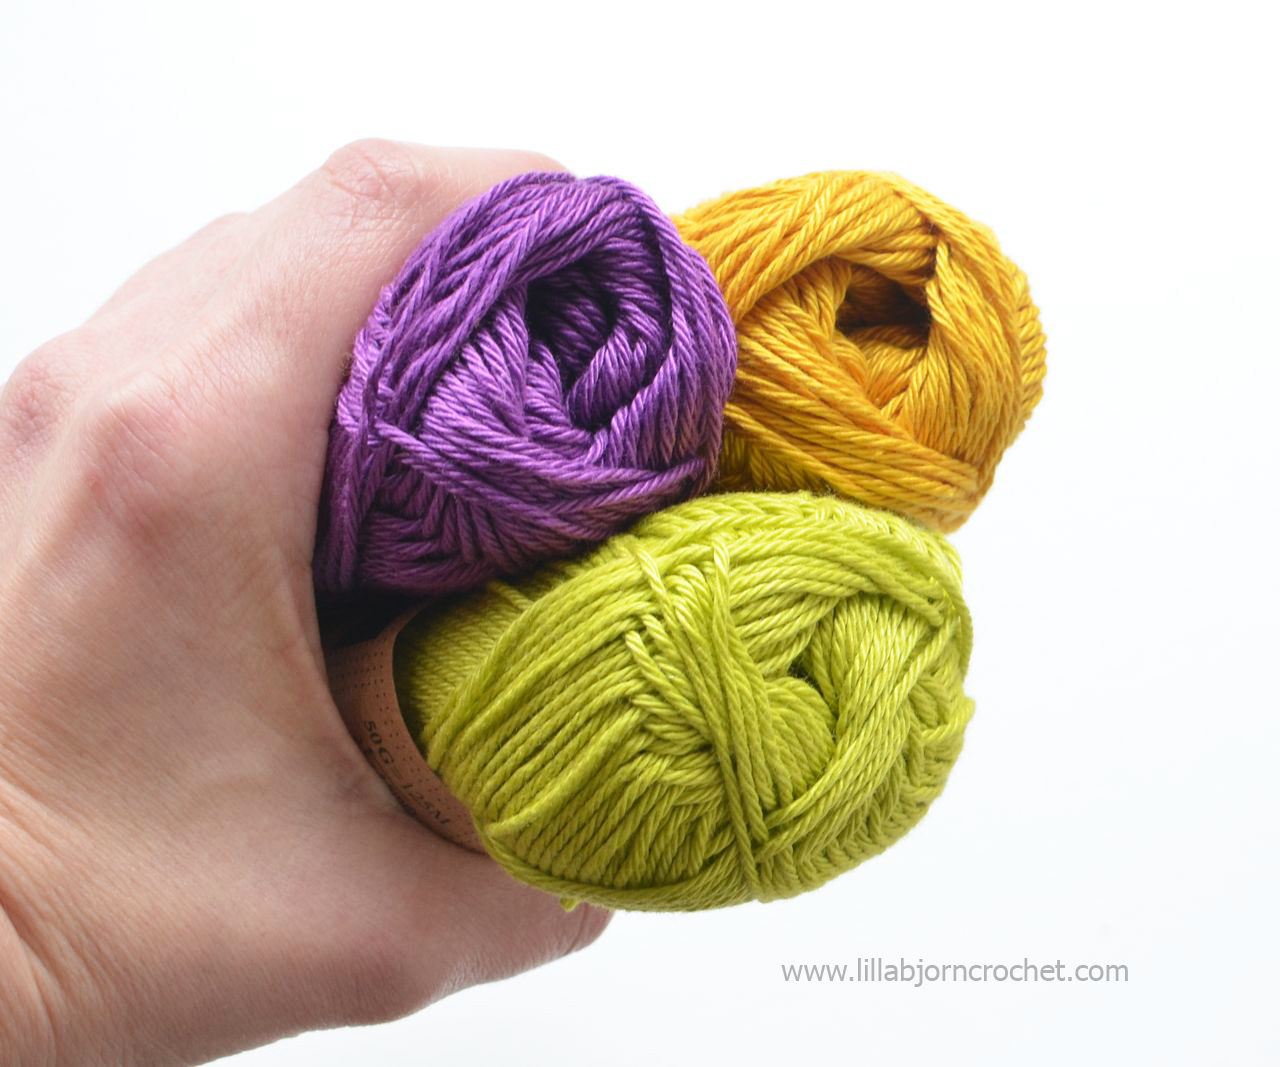 Which yarn is the best choice for overlay crochet - review on Catona yarn (from Scheepjes) by Lilla Bjorn Crochet